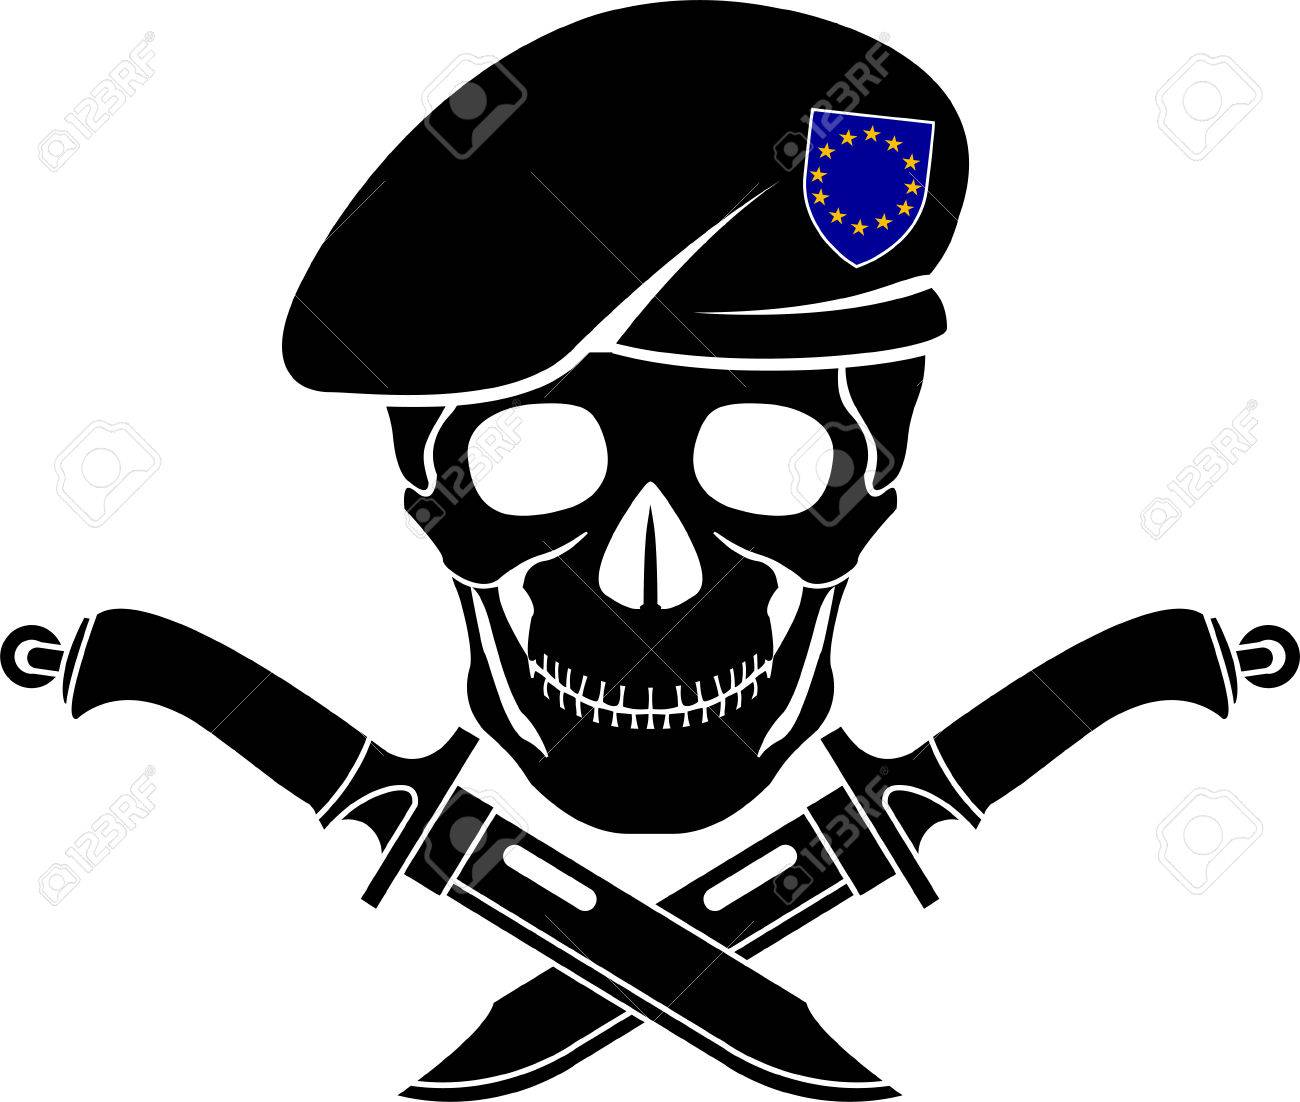 sign of special forces of EU. illustration - 59201144